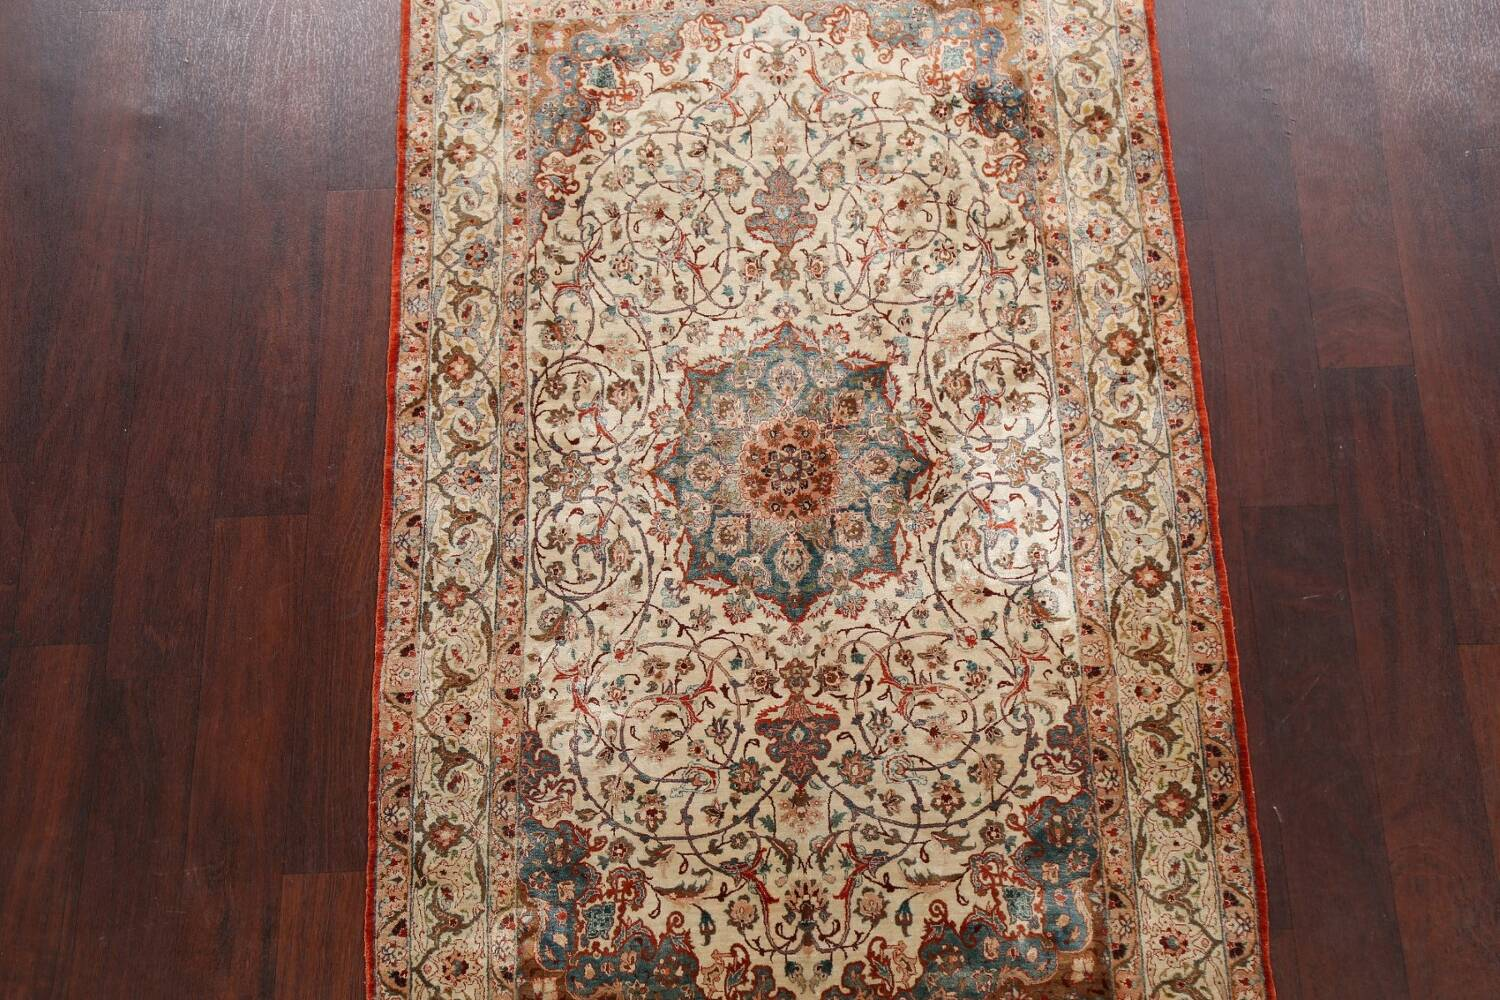 Antique 100% Vegetable Dye Isfahan Persian Area Rug 4x6 image 3